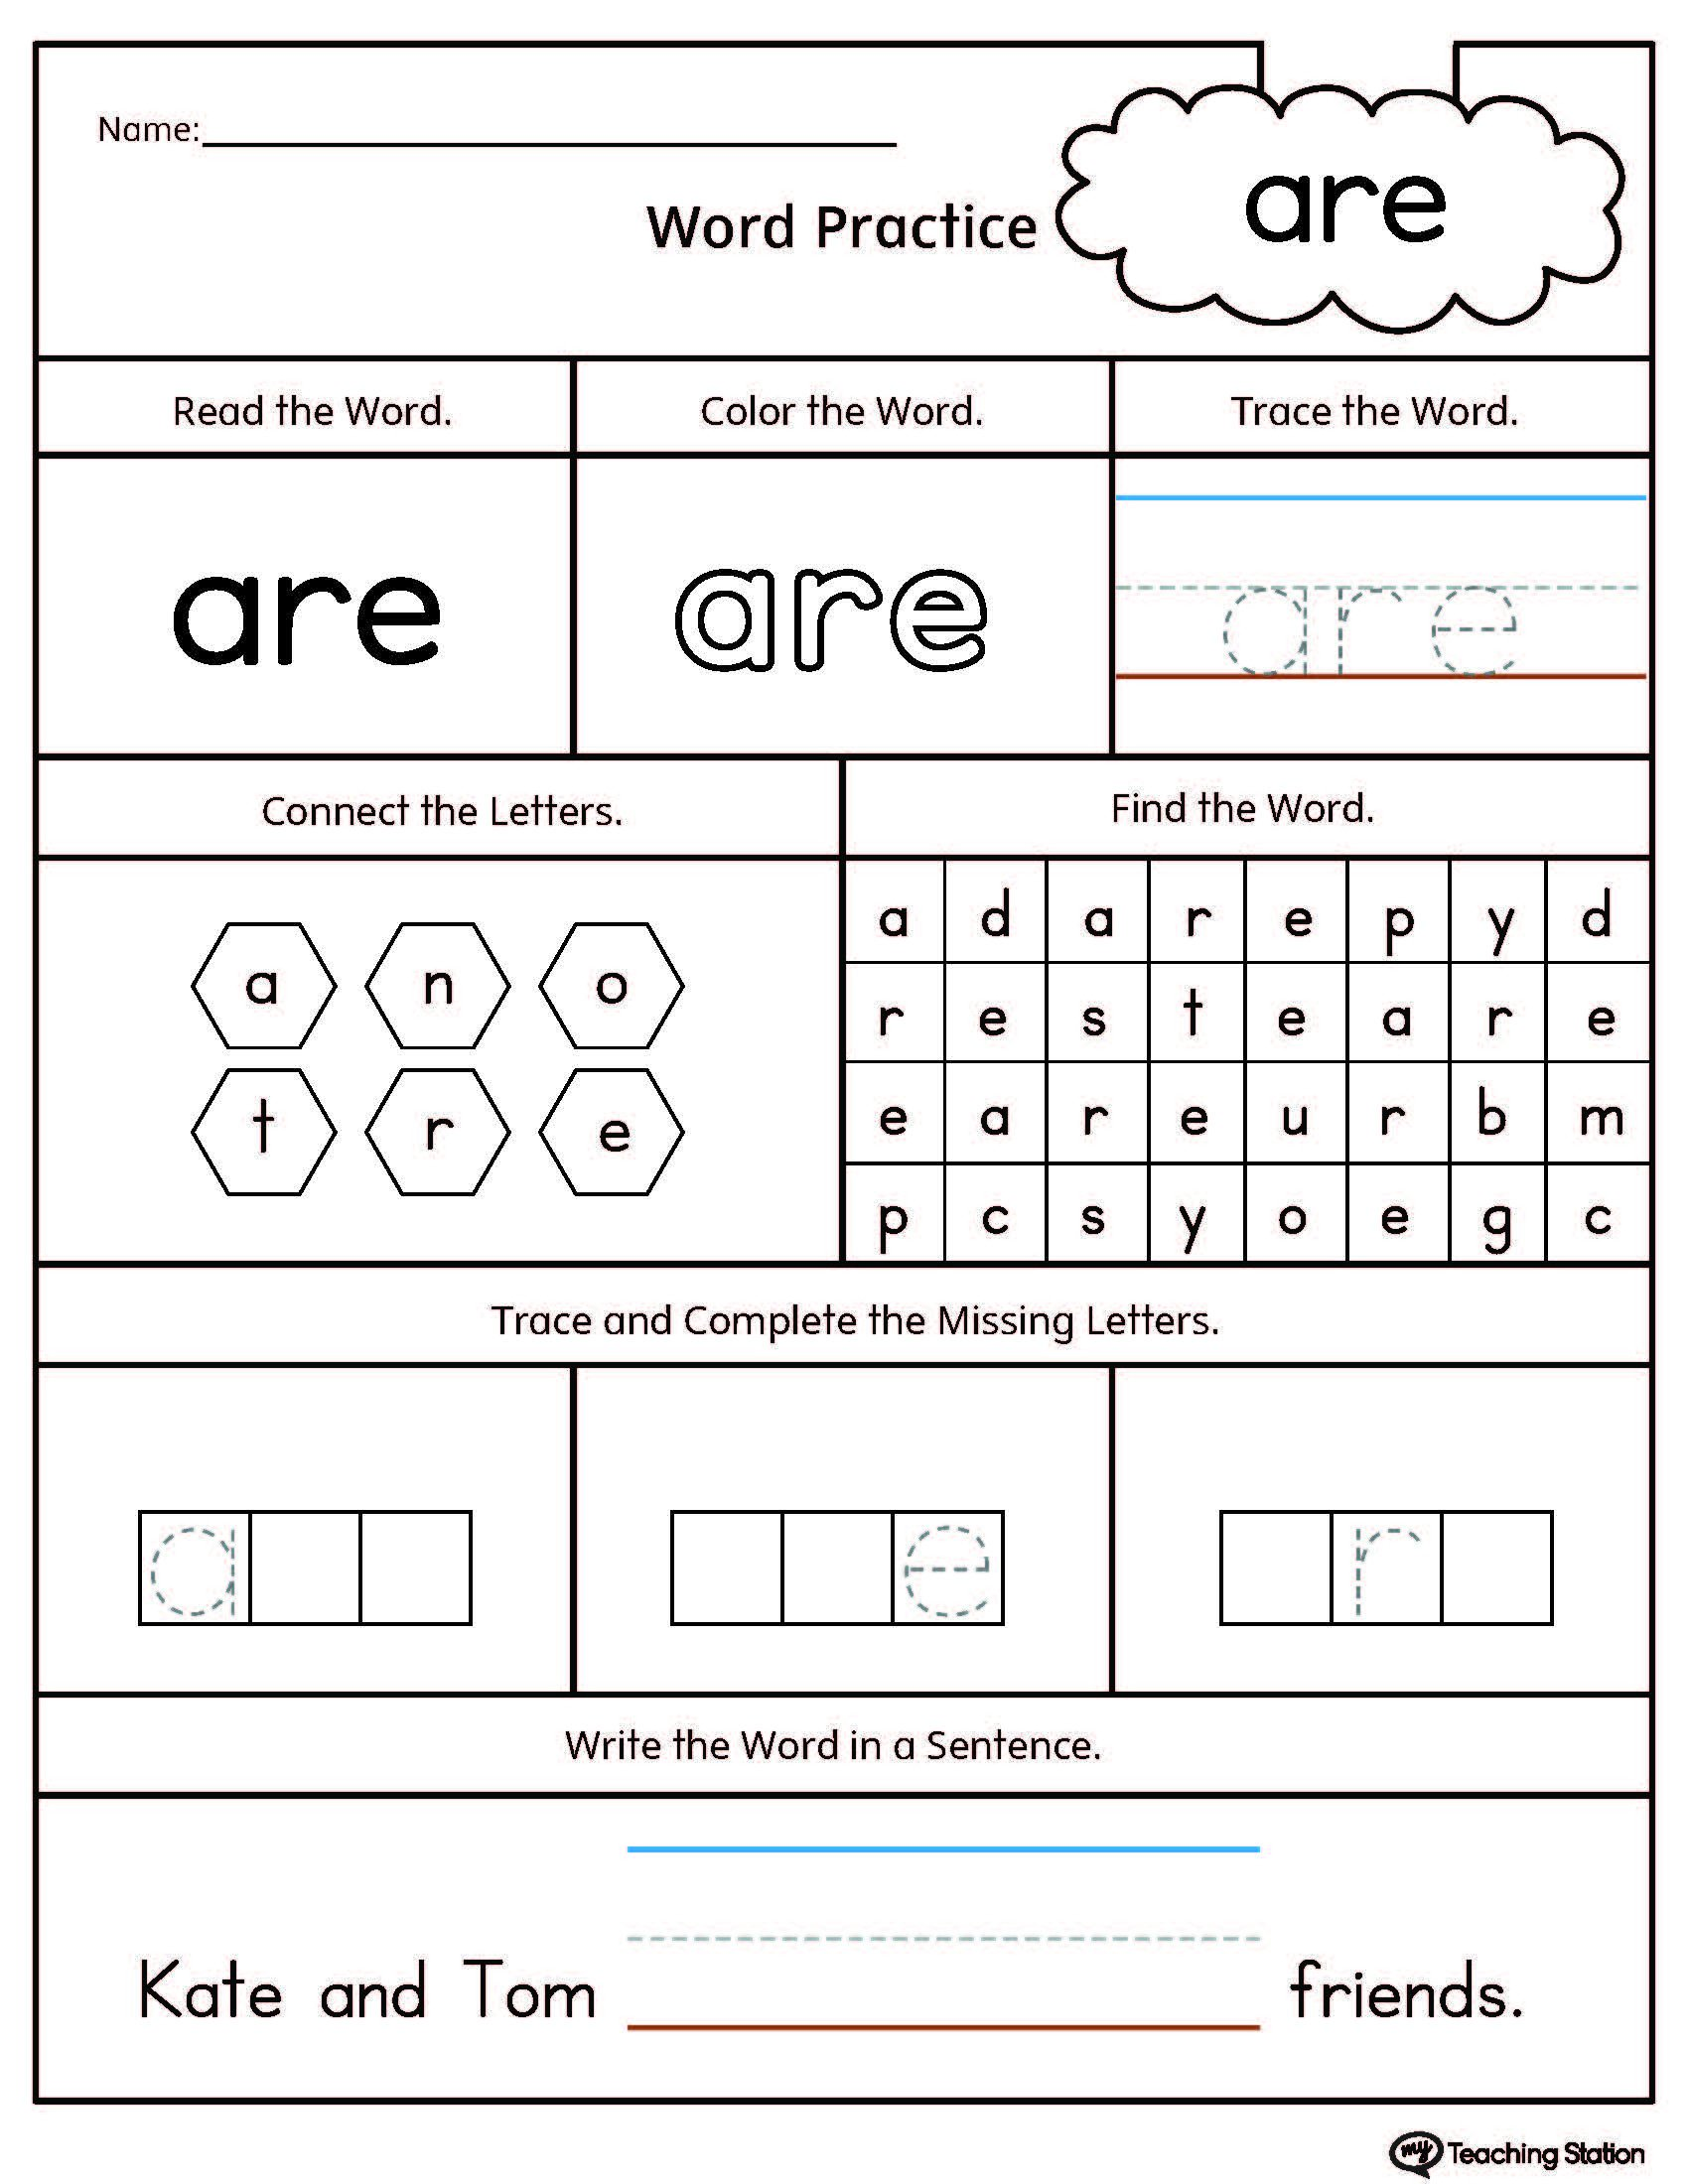 Bd Reversal Worksheets High Frequency Word are Printable Worksheet